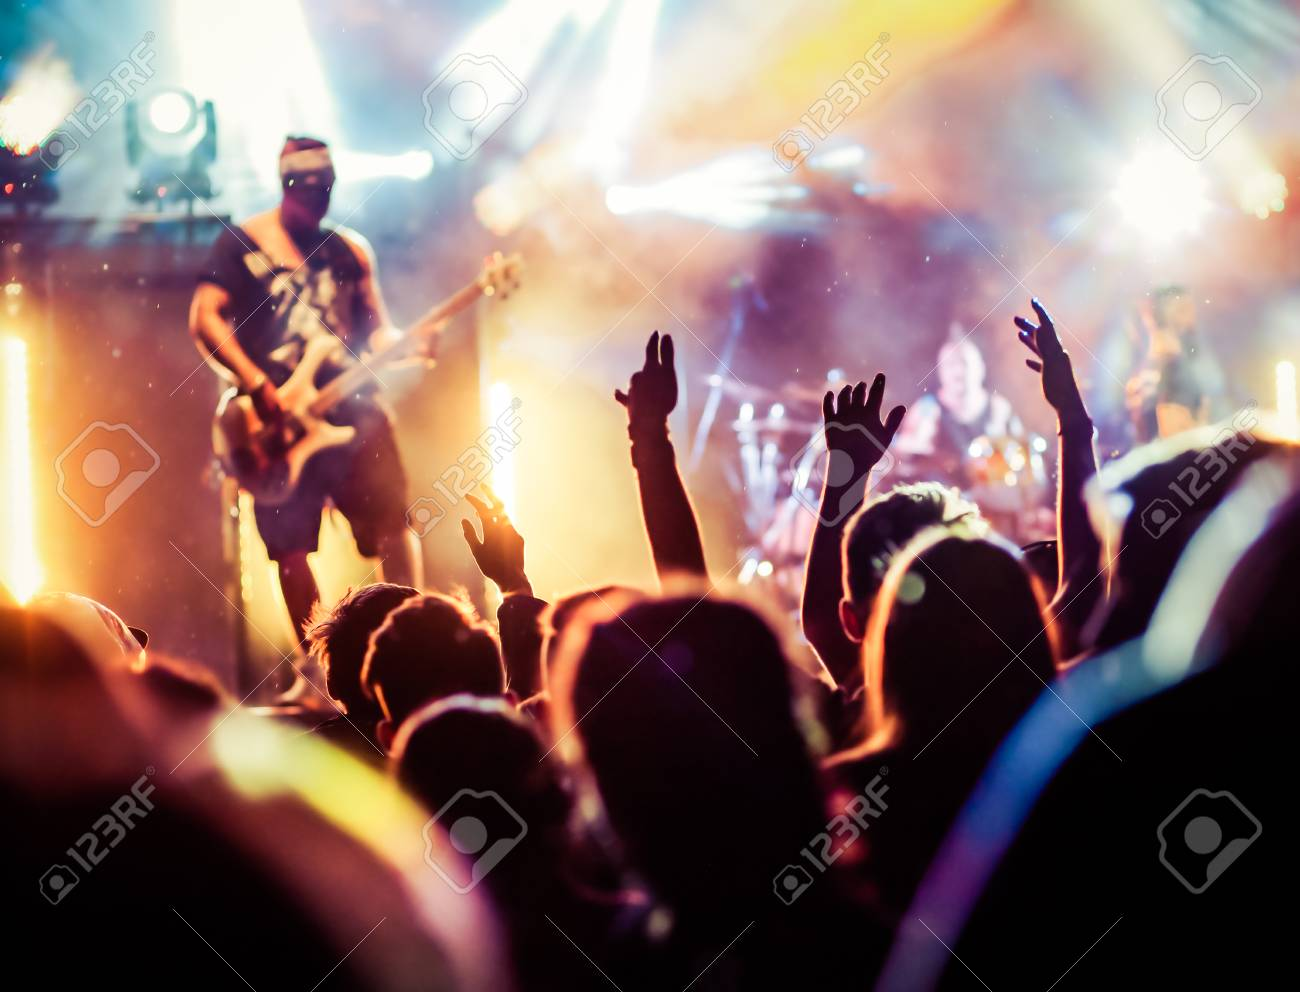 crowd with raised hands at concert - summer music festival - 82673098